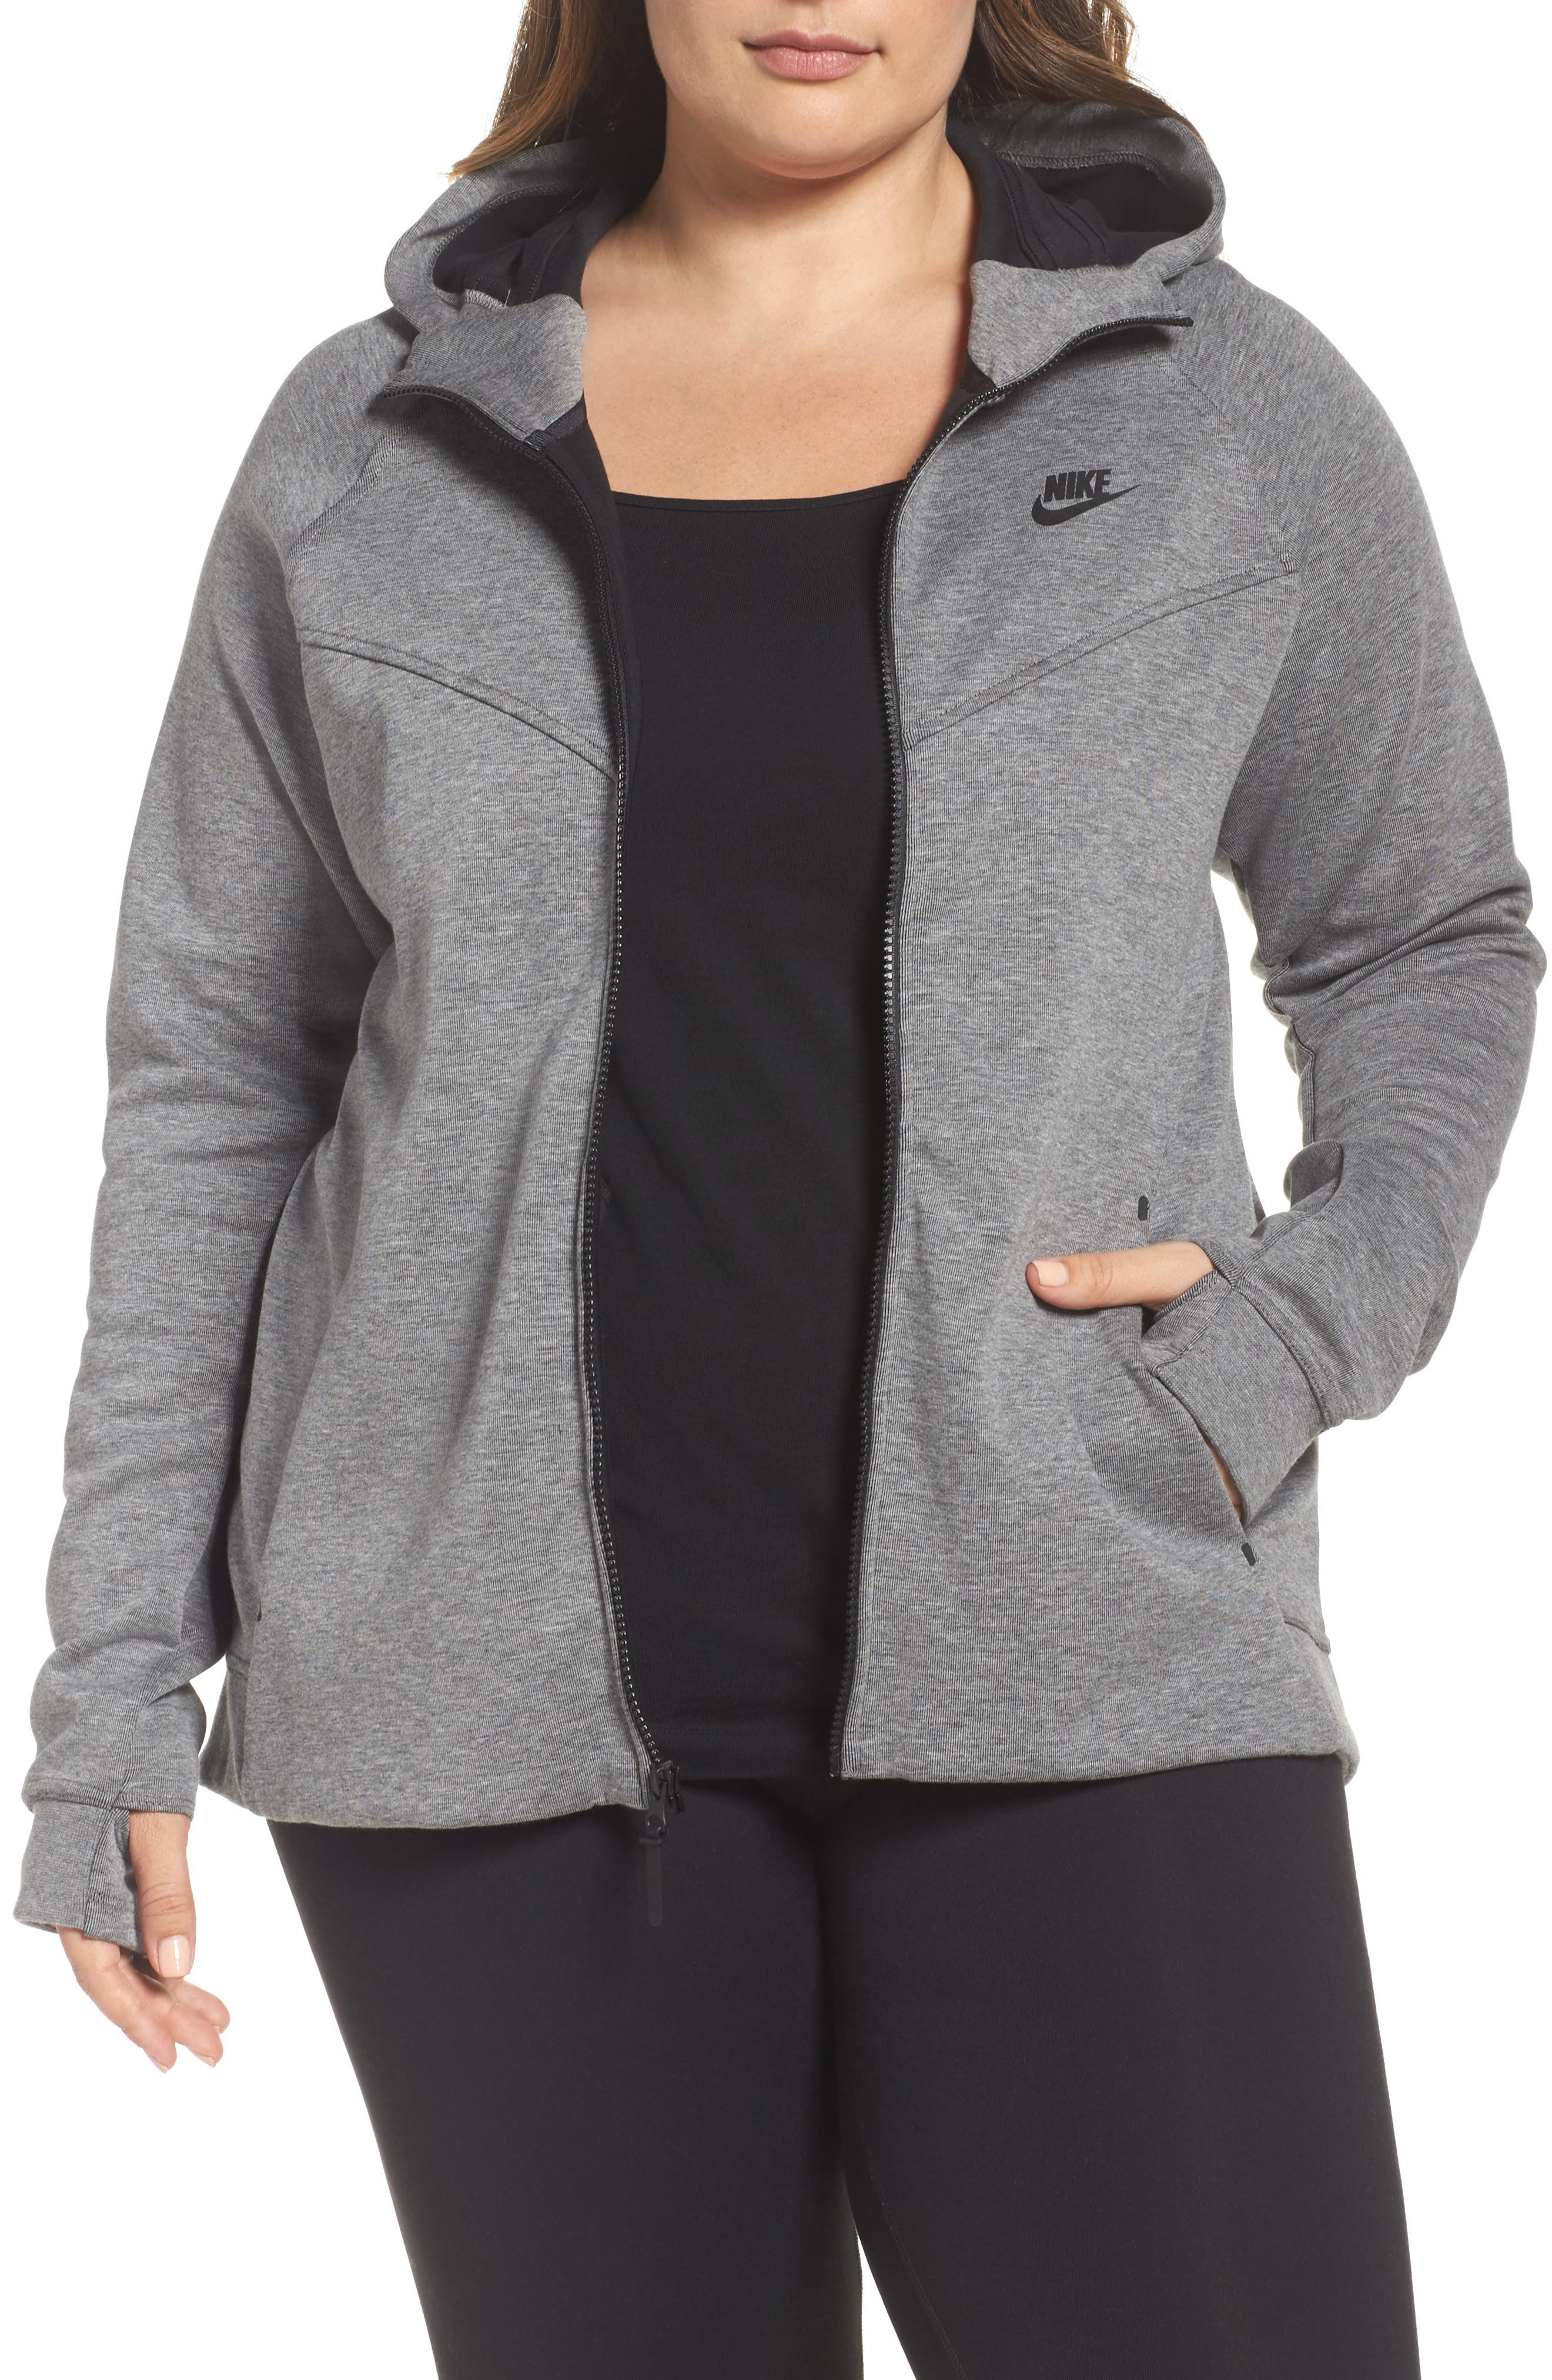 Main Image - Nike Tech Fleece Hoodie (Plus Size)